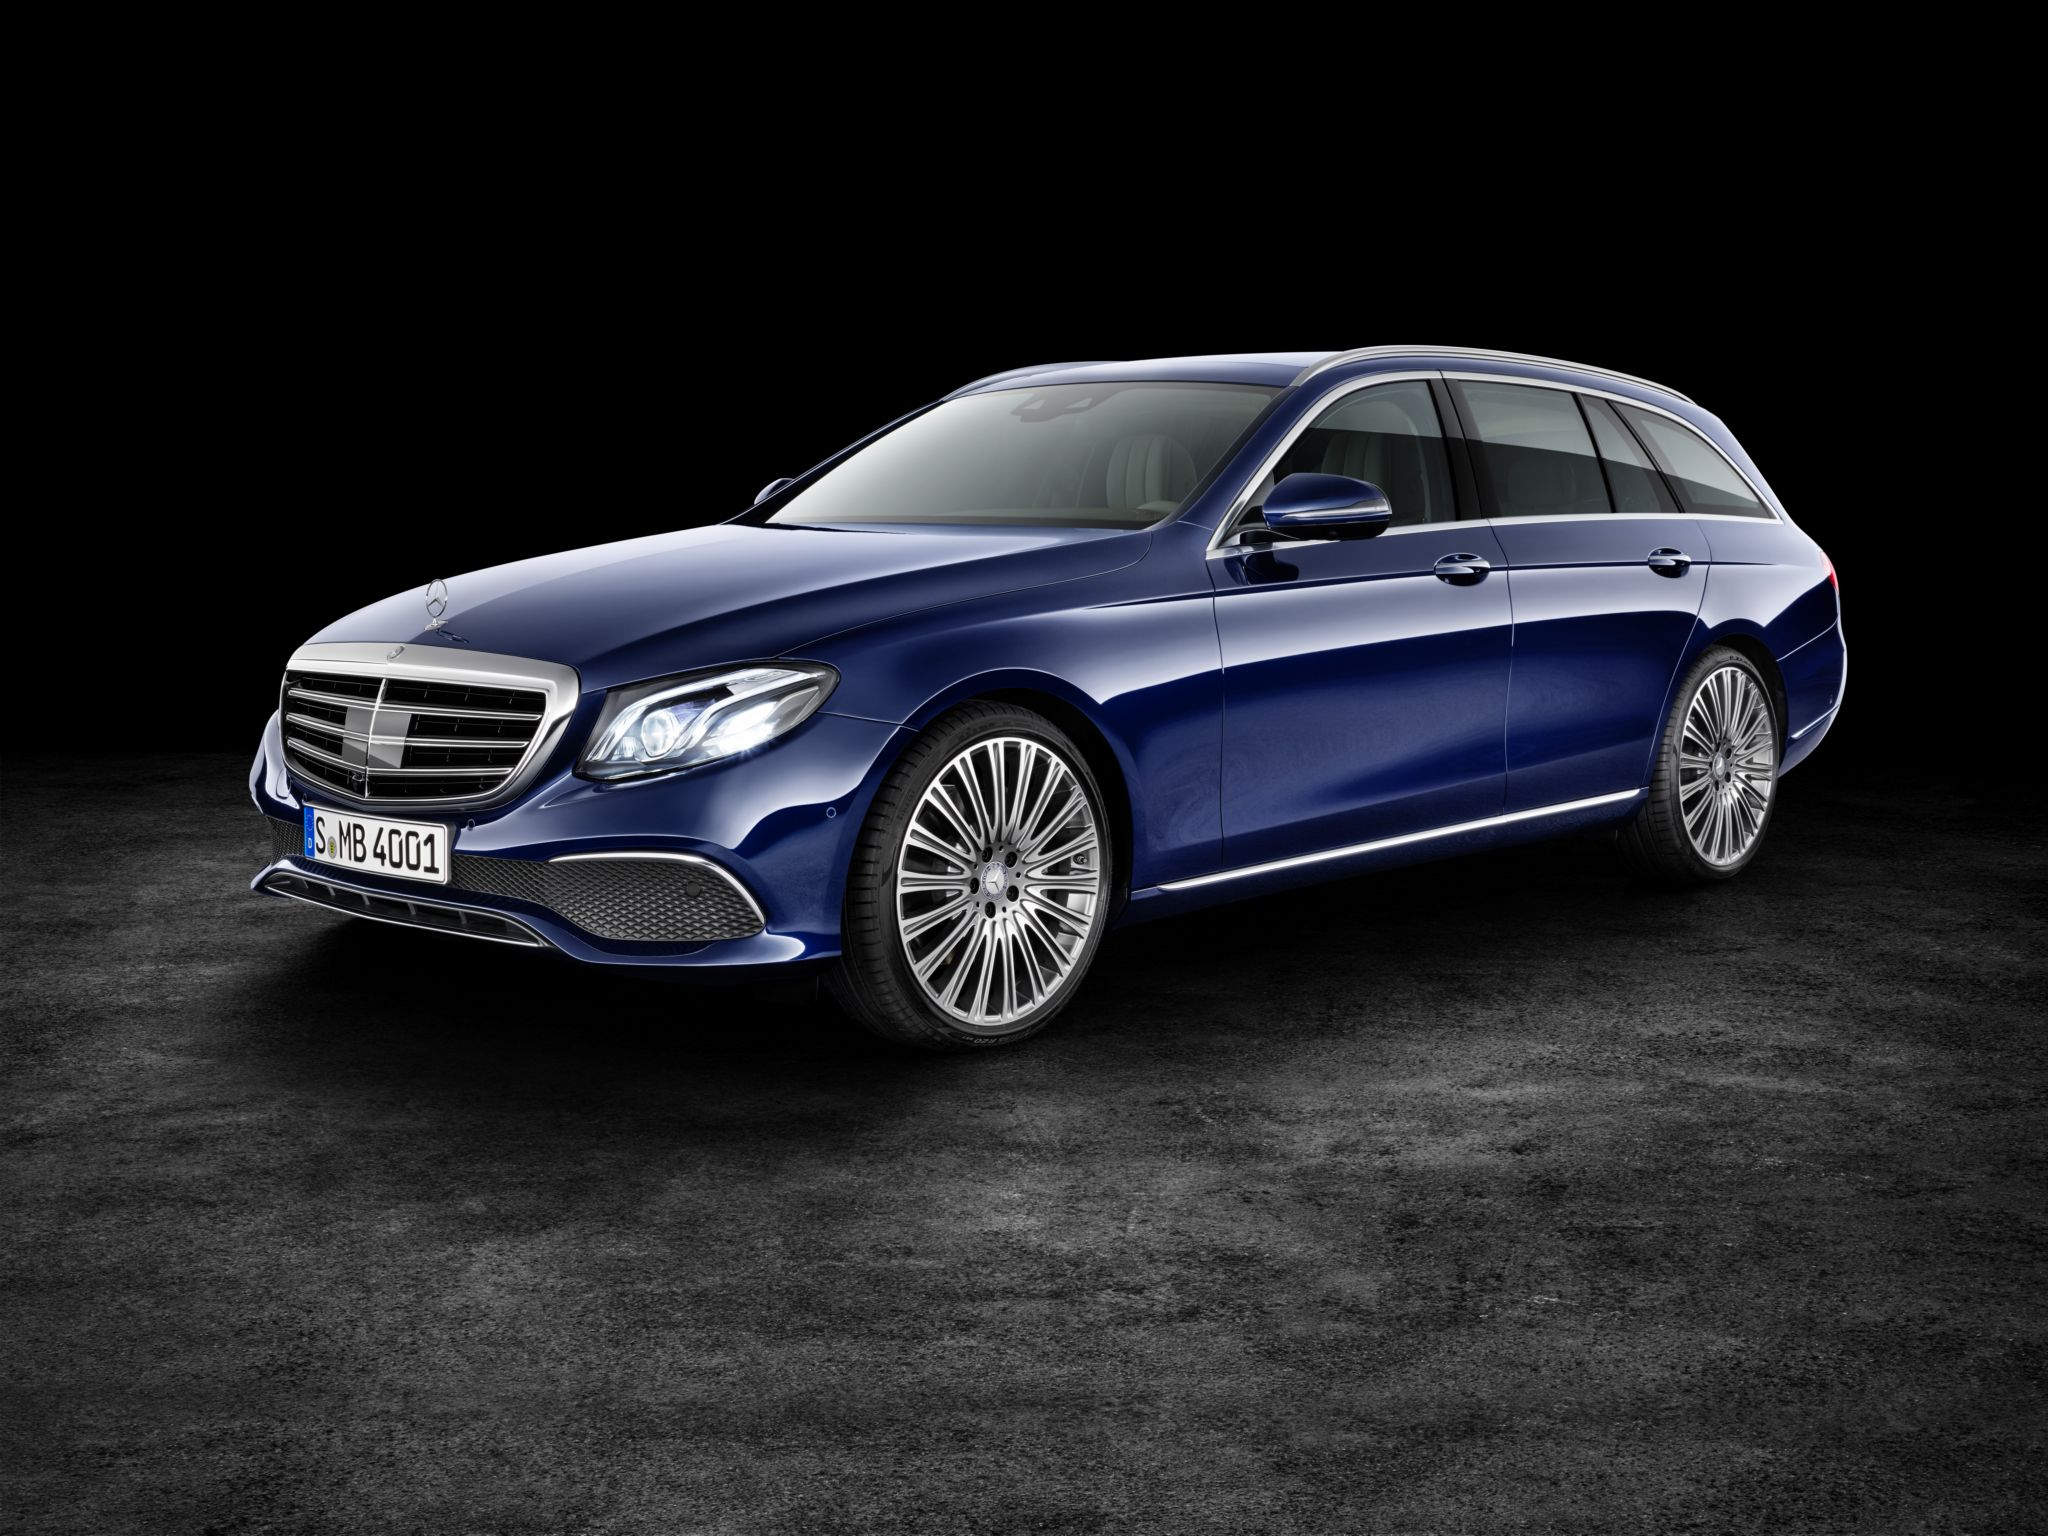 2017 mercedes benz e class wagon is both spacious and